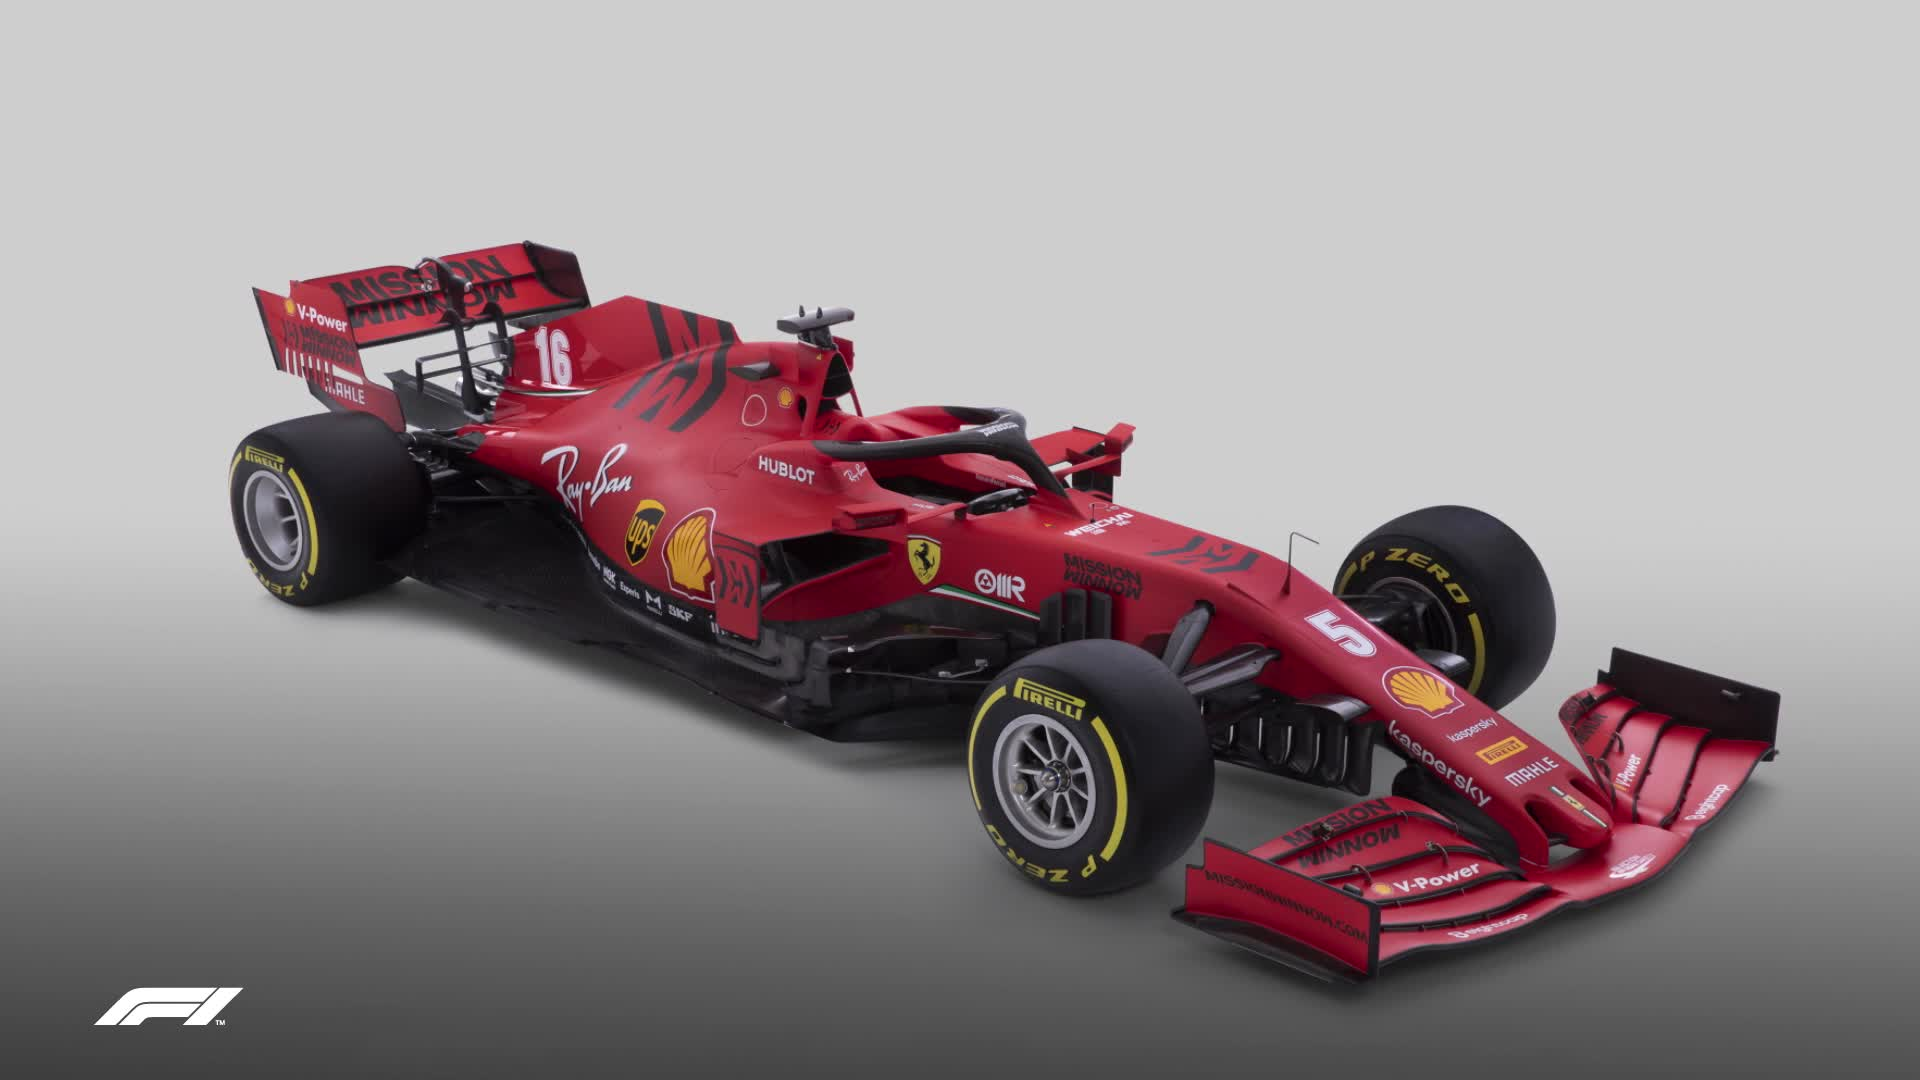 Watch Ferrari S 2020 Sf1000 F1 Car Compared To Their 2019 Sf90 Formula 1